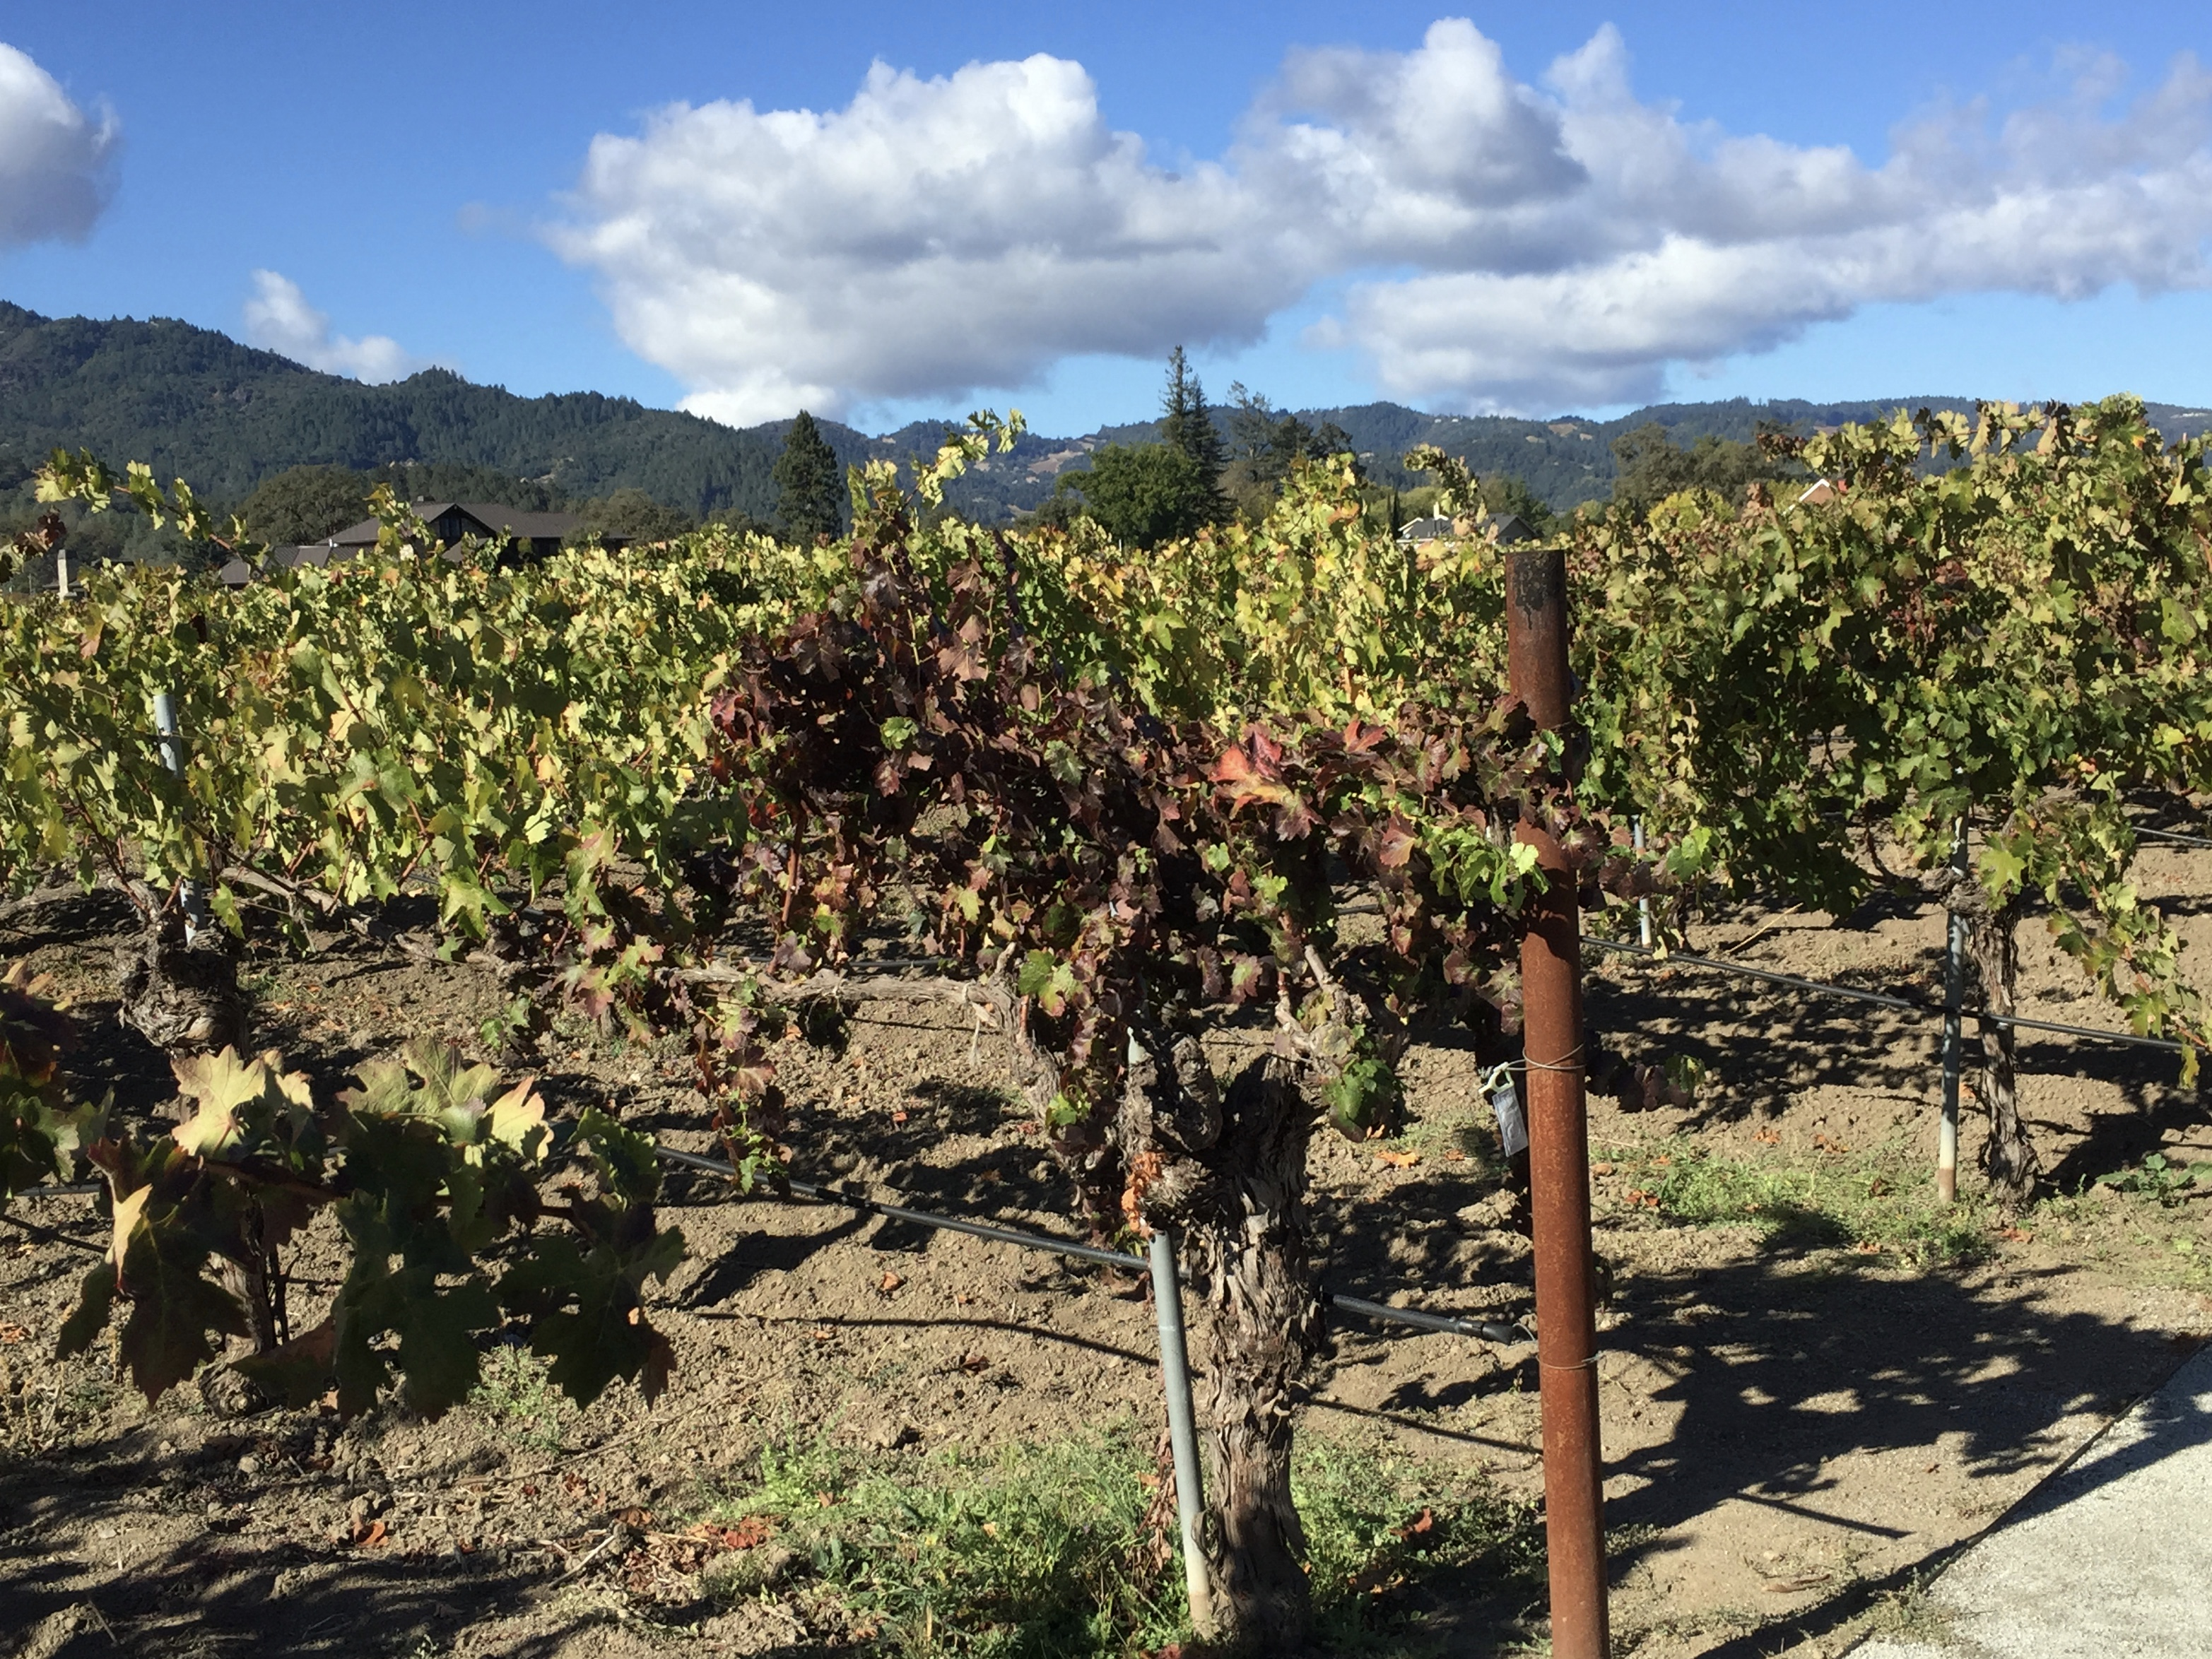 Cabernet vines in Kronos vineyard, Corison Winery, Napa Valley